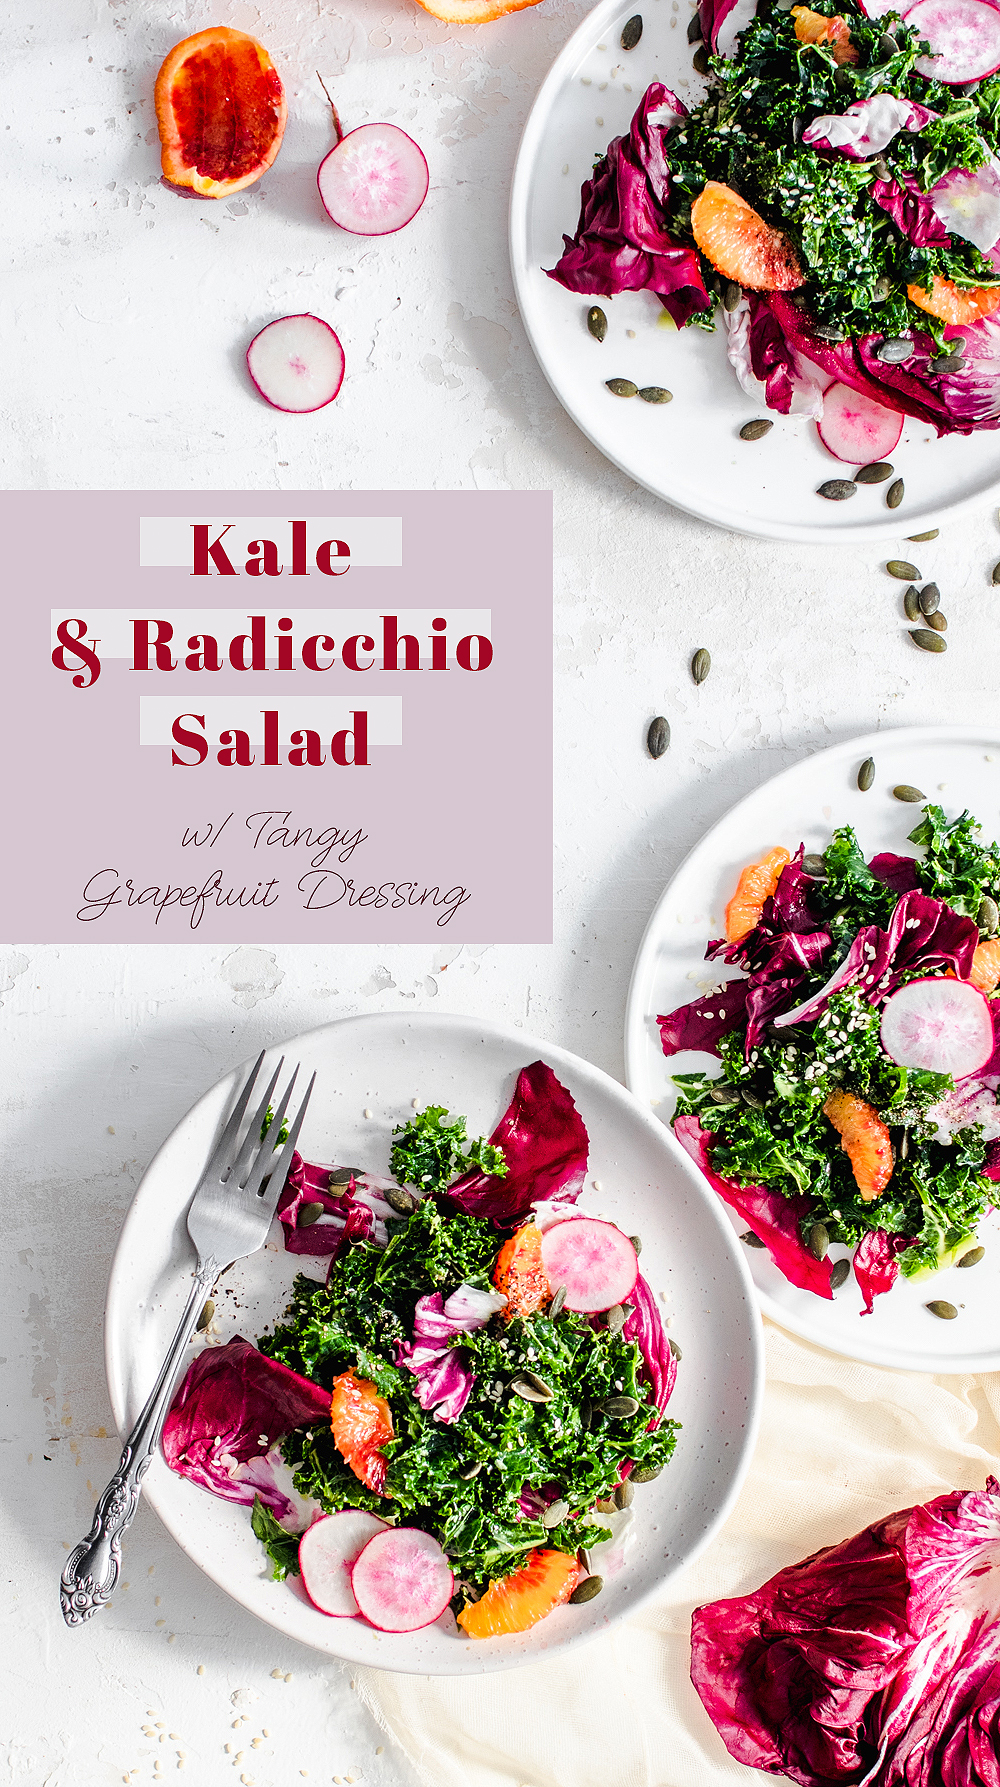 Kale & Radicchio Salad with Tangy Grapefruit Dressing